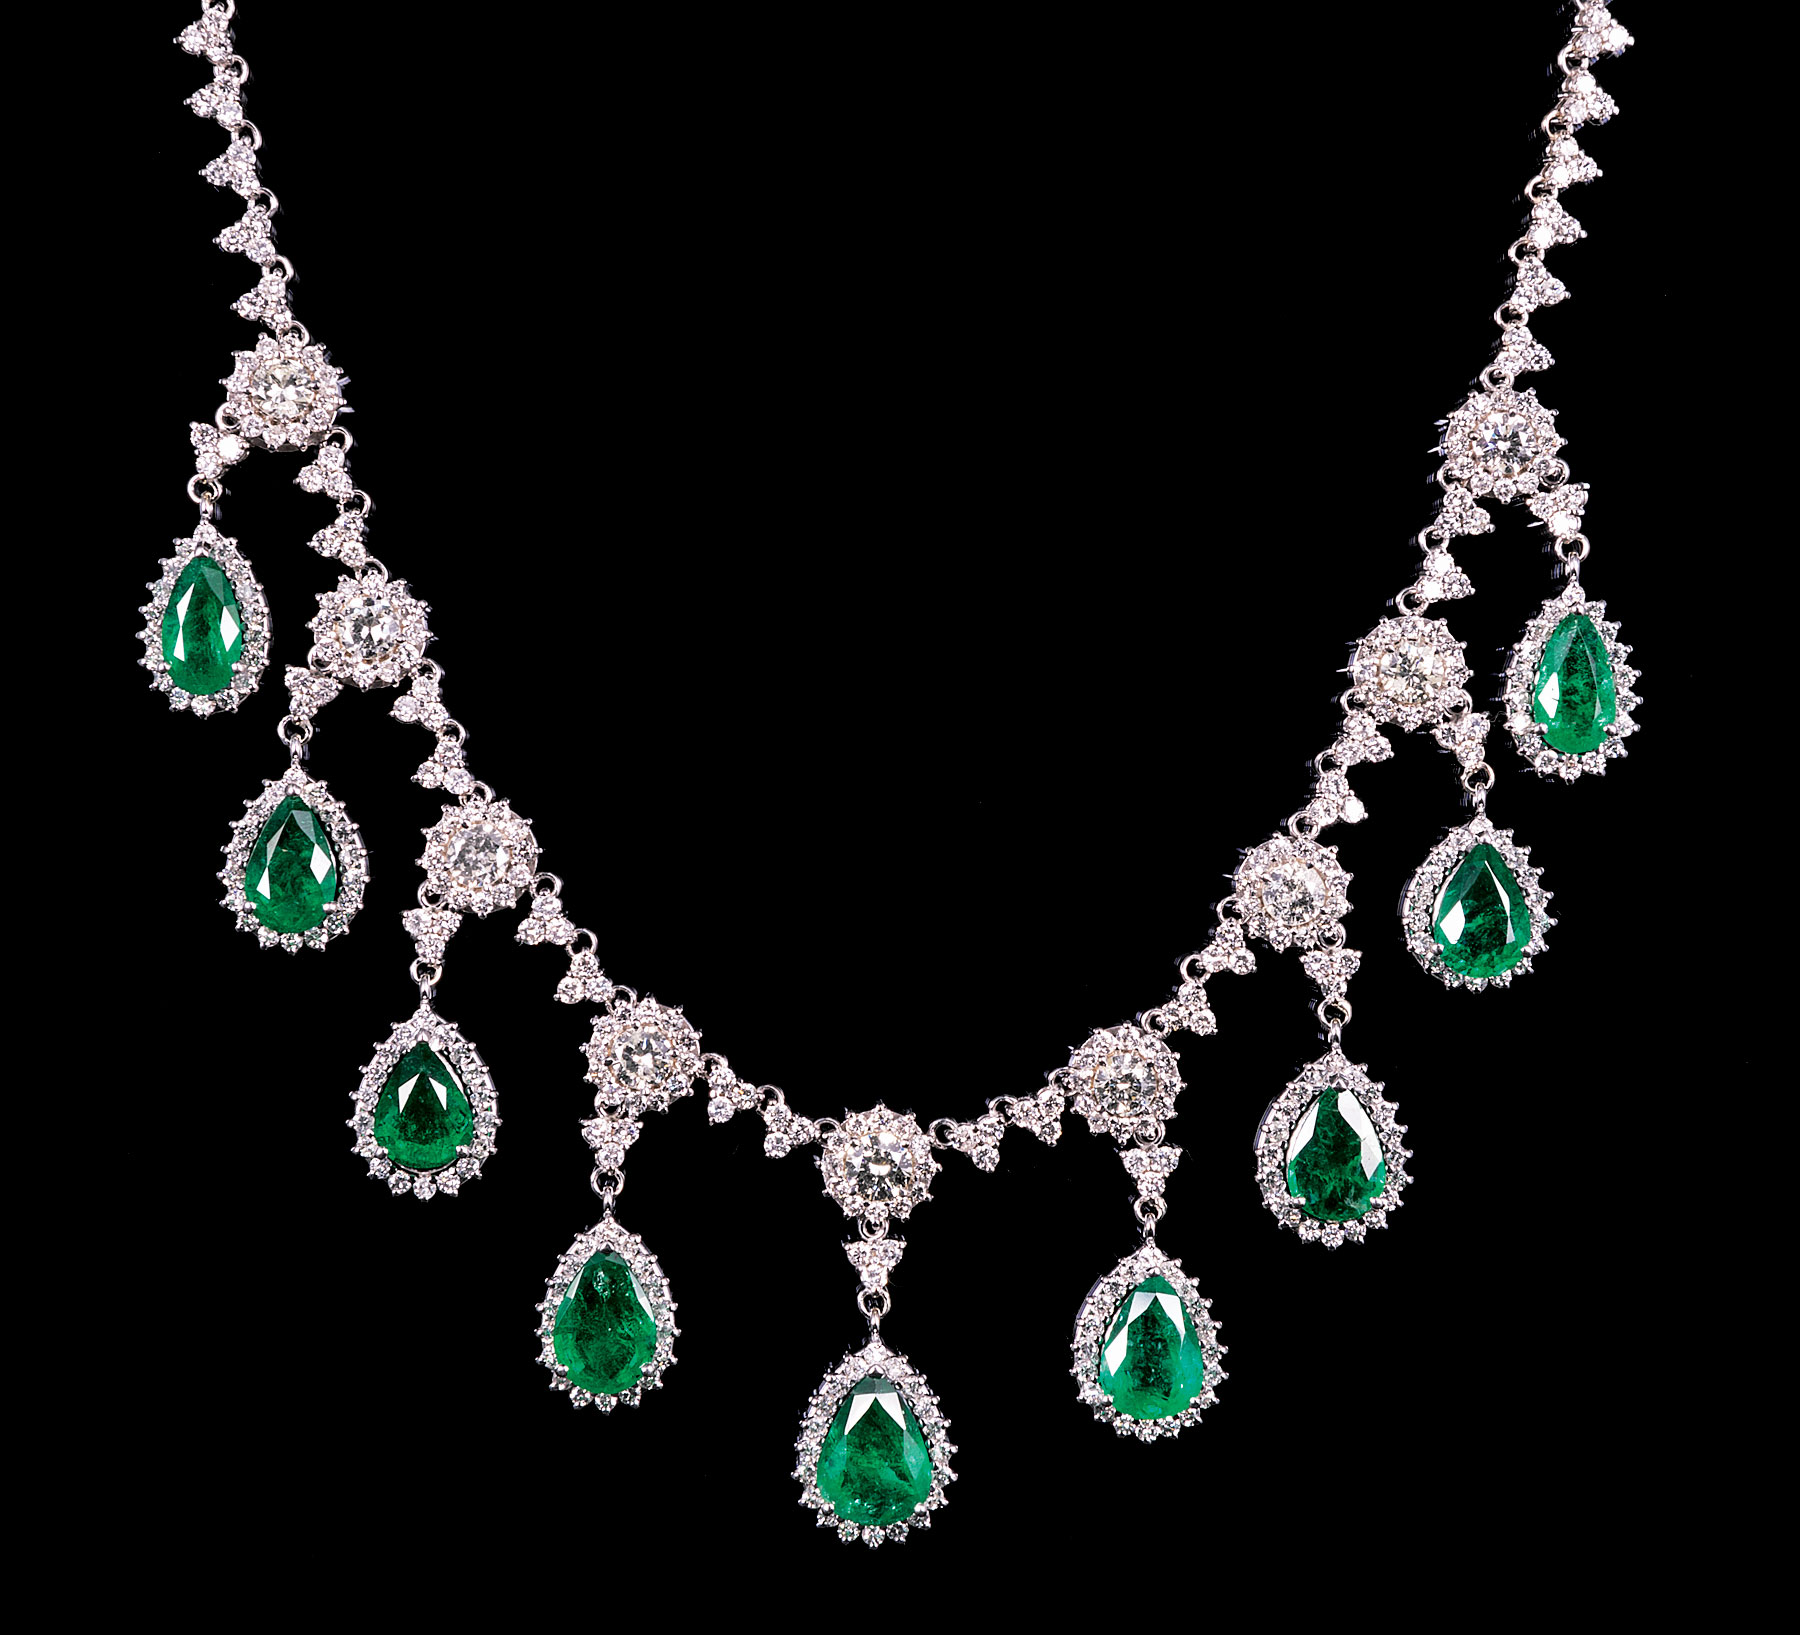 Lot 576 - 18 kt. White Gold, Diamond and Emerald Necklace , 9 pear shaped emeralds, total wt. approx. 19.93